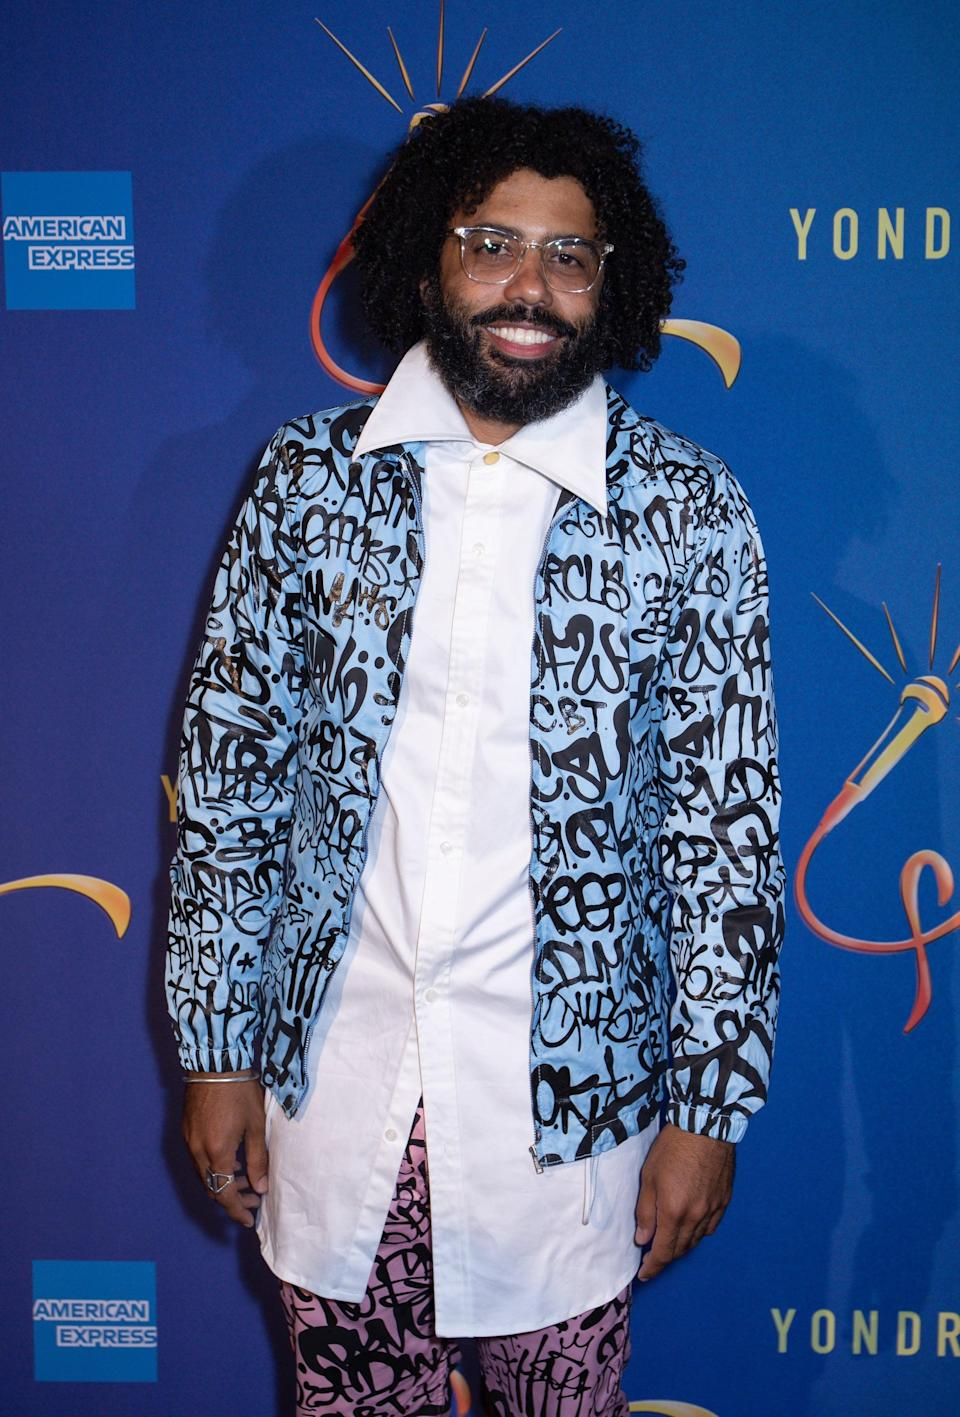 "<p>The <strong>Hamilton</strong> actor is reportedly in final negotiations to <a href=""https://www.hollywoodreporter.com/heat-vision/daveed-diggs-talks-play-sebastian-disneys-little-mermaid-1246288"" class=""link rapid-noclick-resp"" rel=""nofollow noopener"" target=""_blank"" data-ylk=""slk:join the cast as Sebastian"">join the cast as Sebastian</a>. </p>"